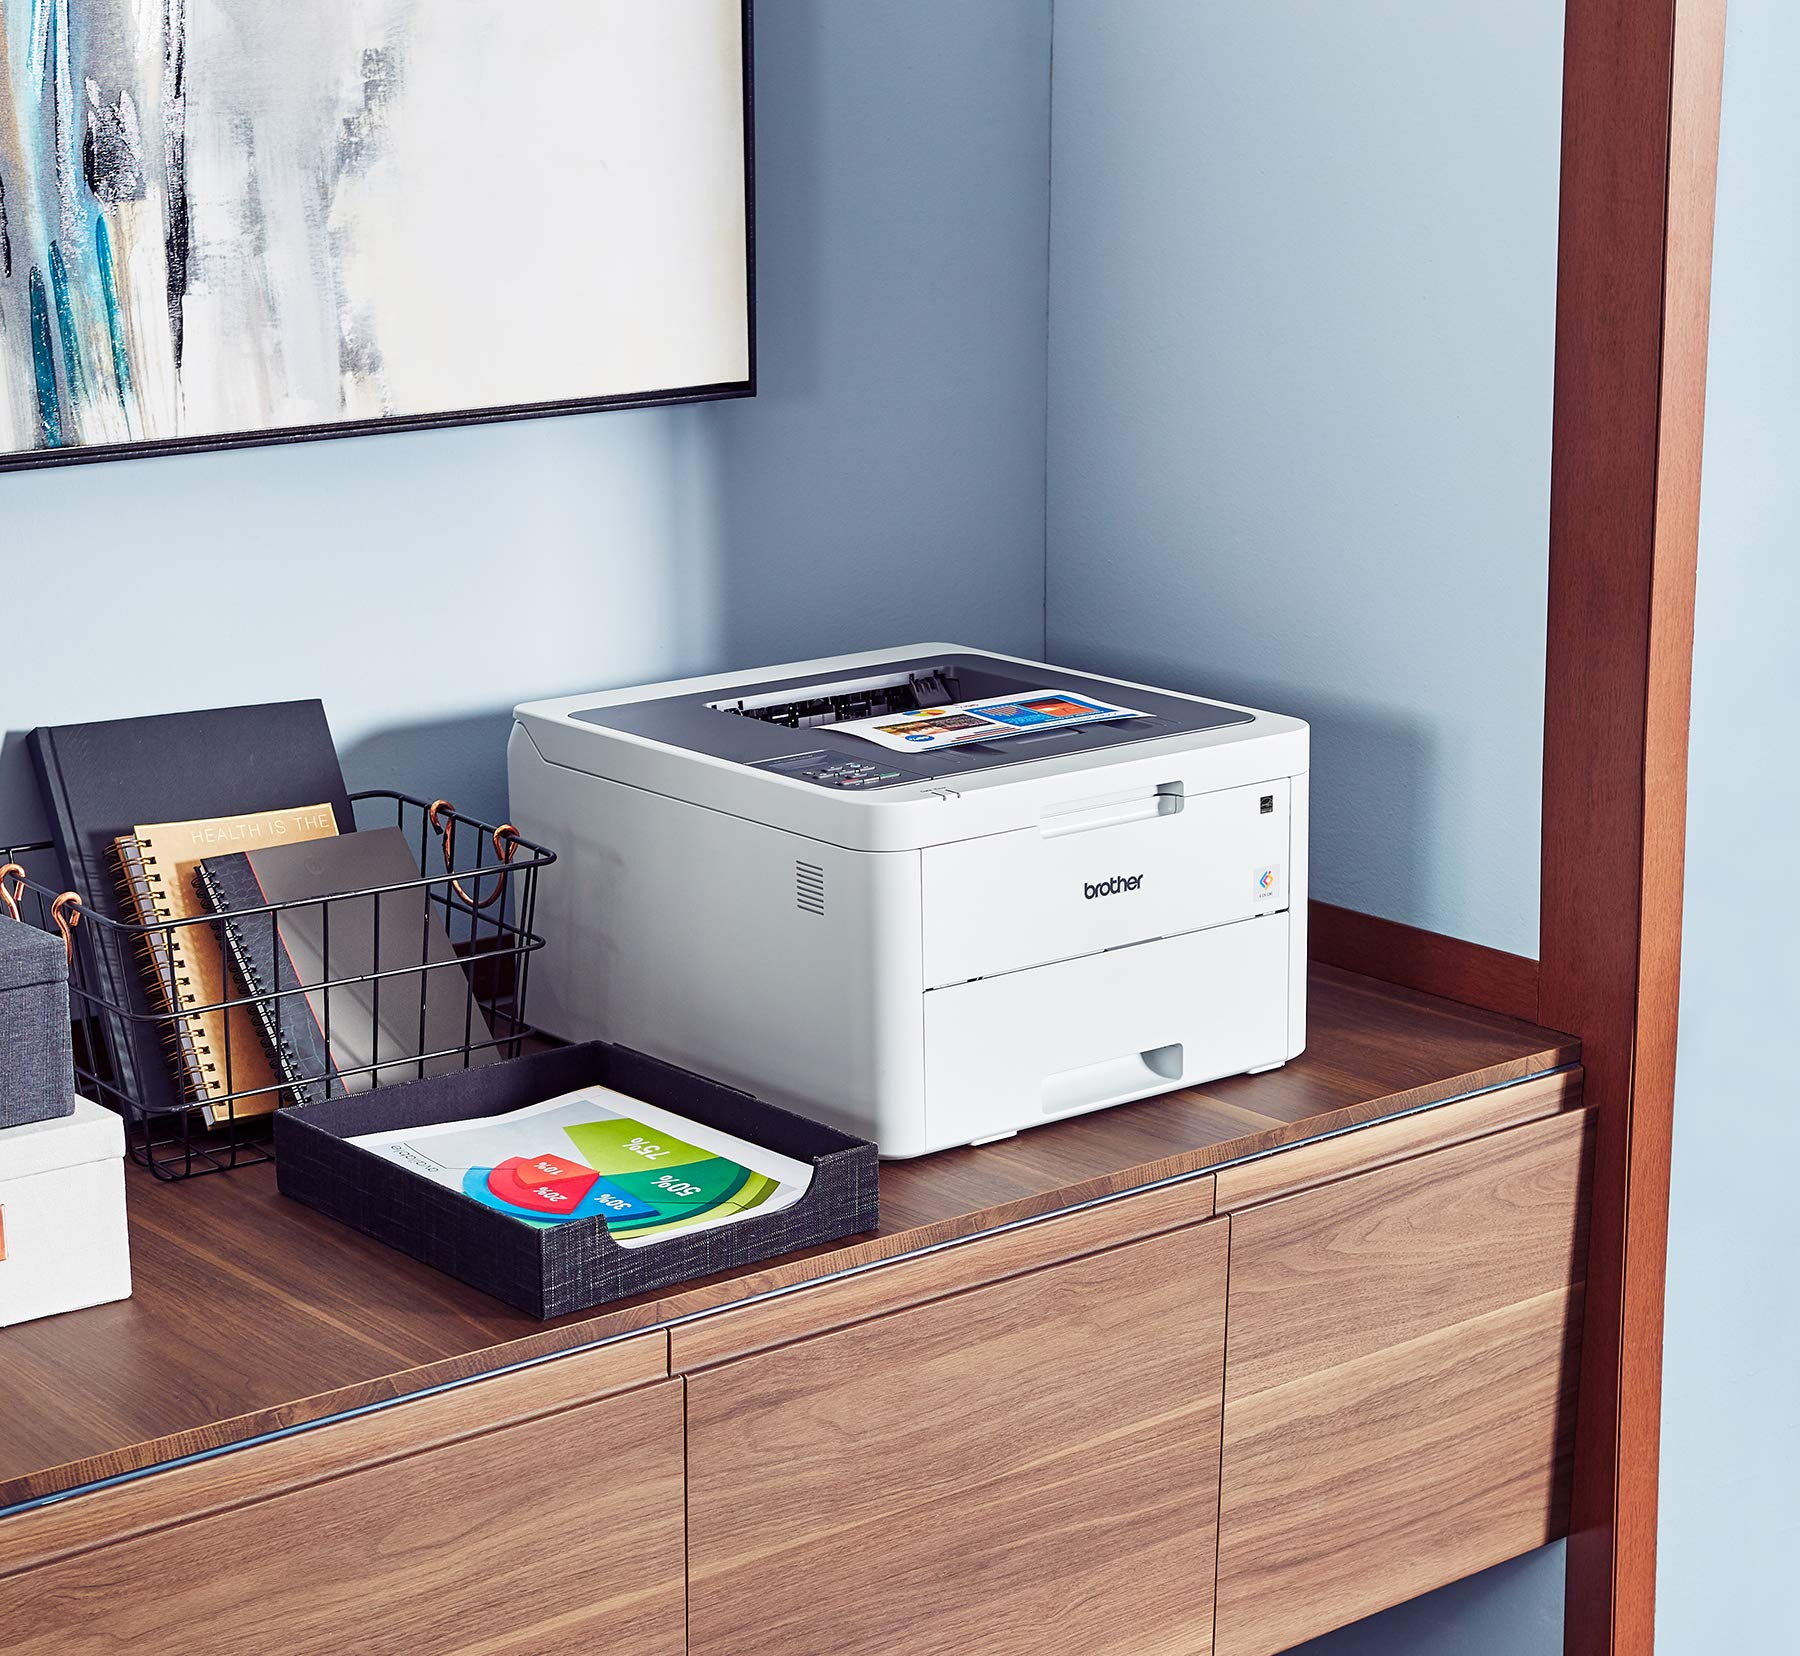 Brother HL-L3210CW Compact Digital Color Printer Providing Laser Printer Quality Results with Wireless, Amazon Dash Replenishment Enabled, White by Brother (Image #2)